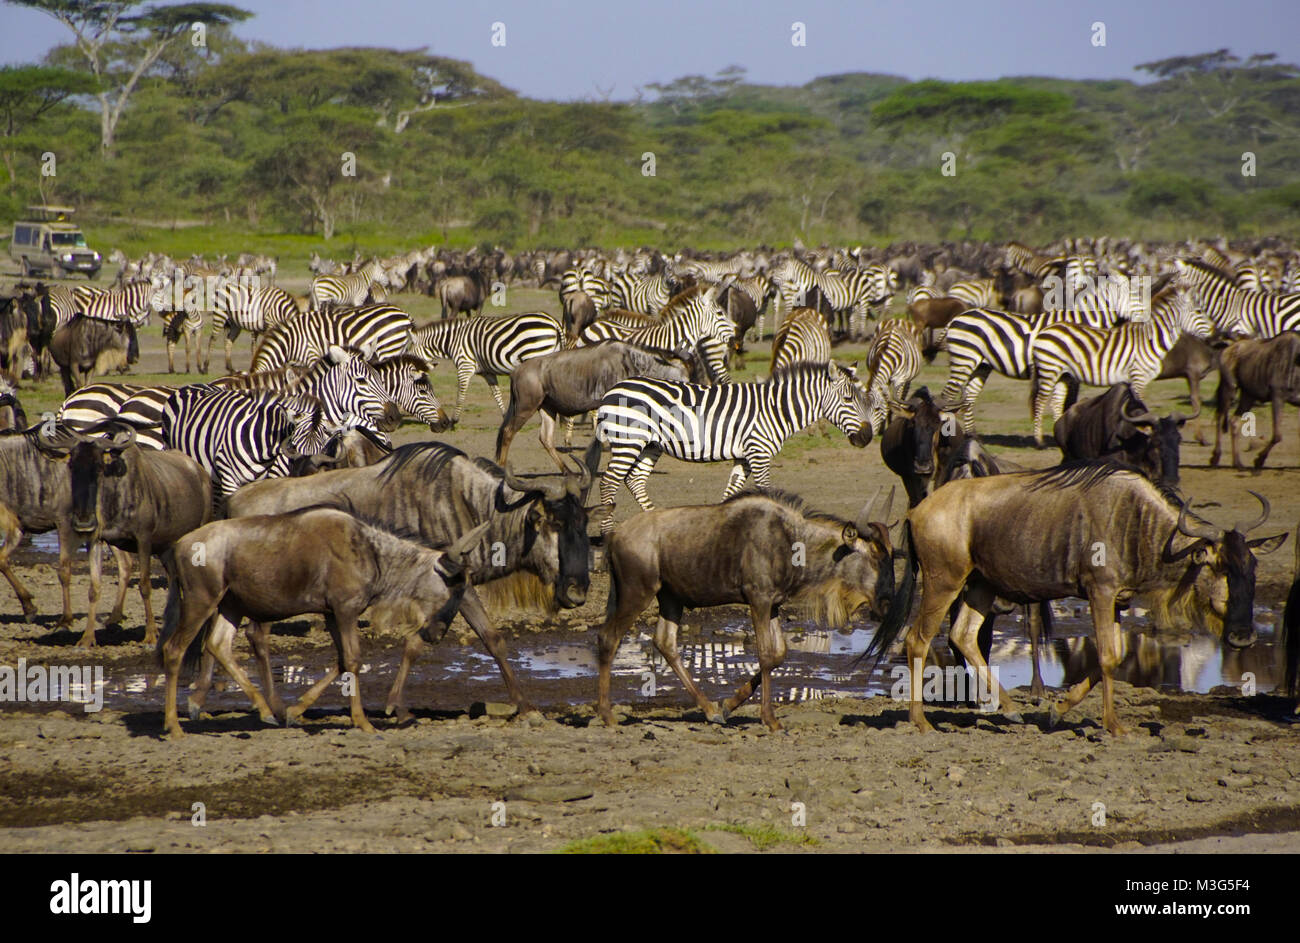 Wildebeest and zebras on Serengeti Plains, Tanzania - Stock Image